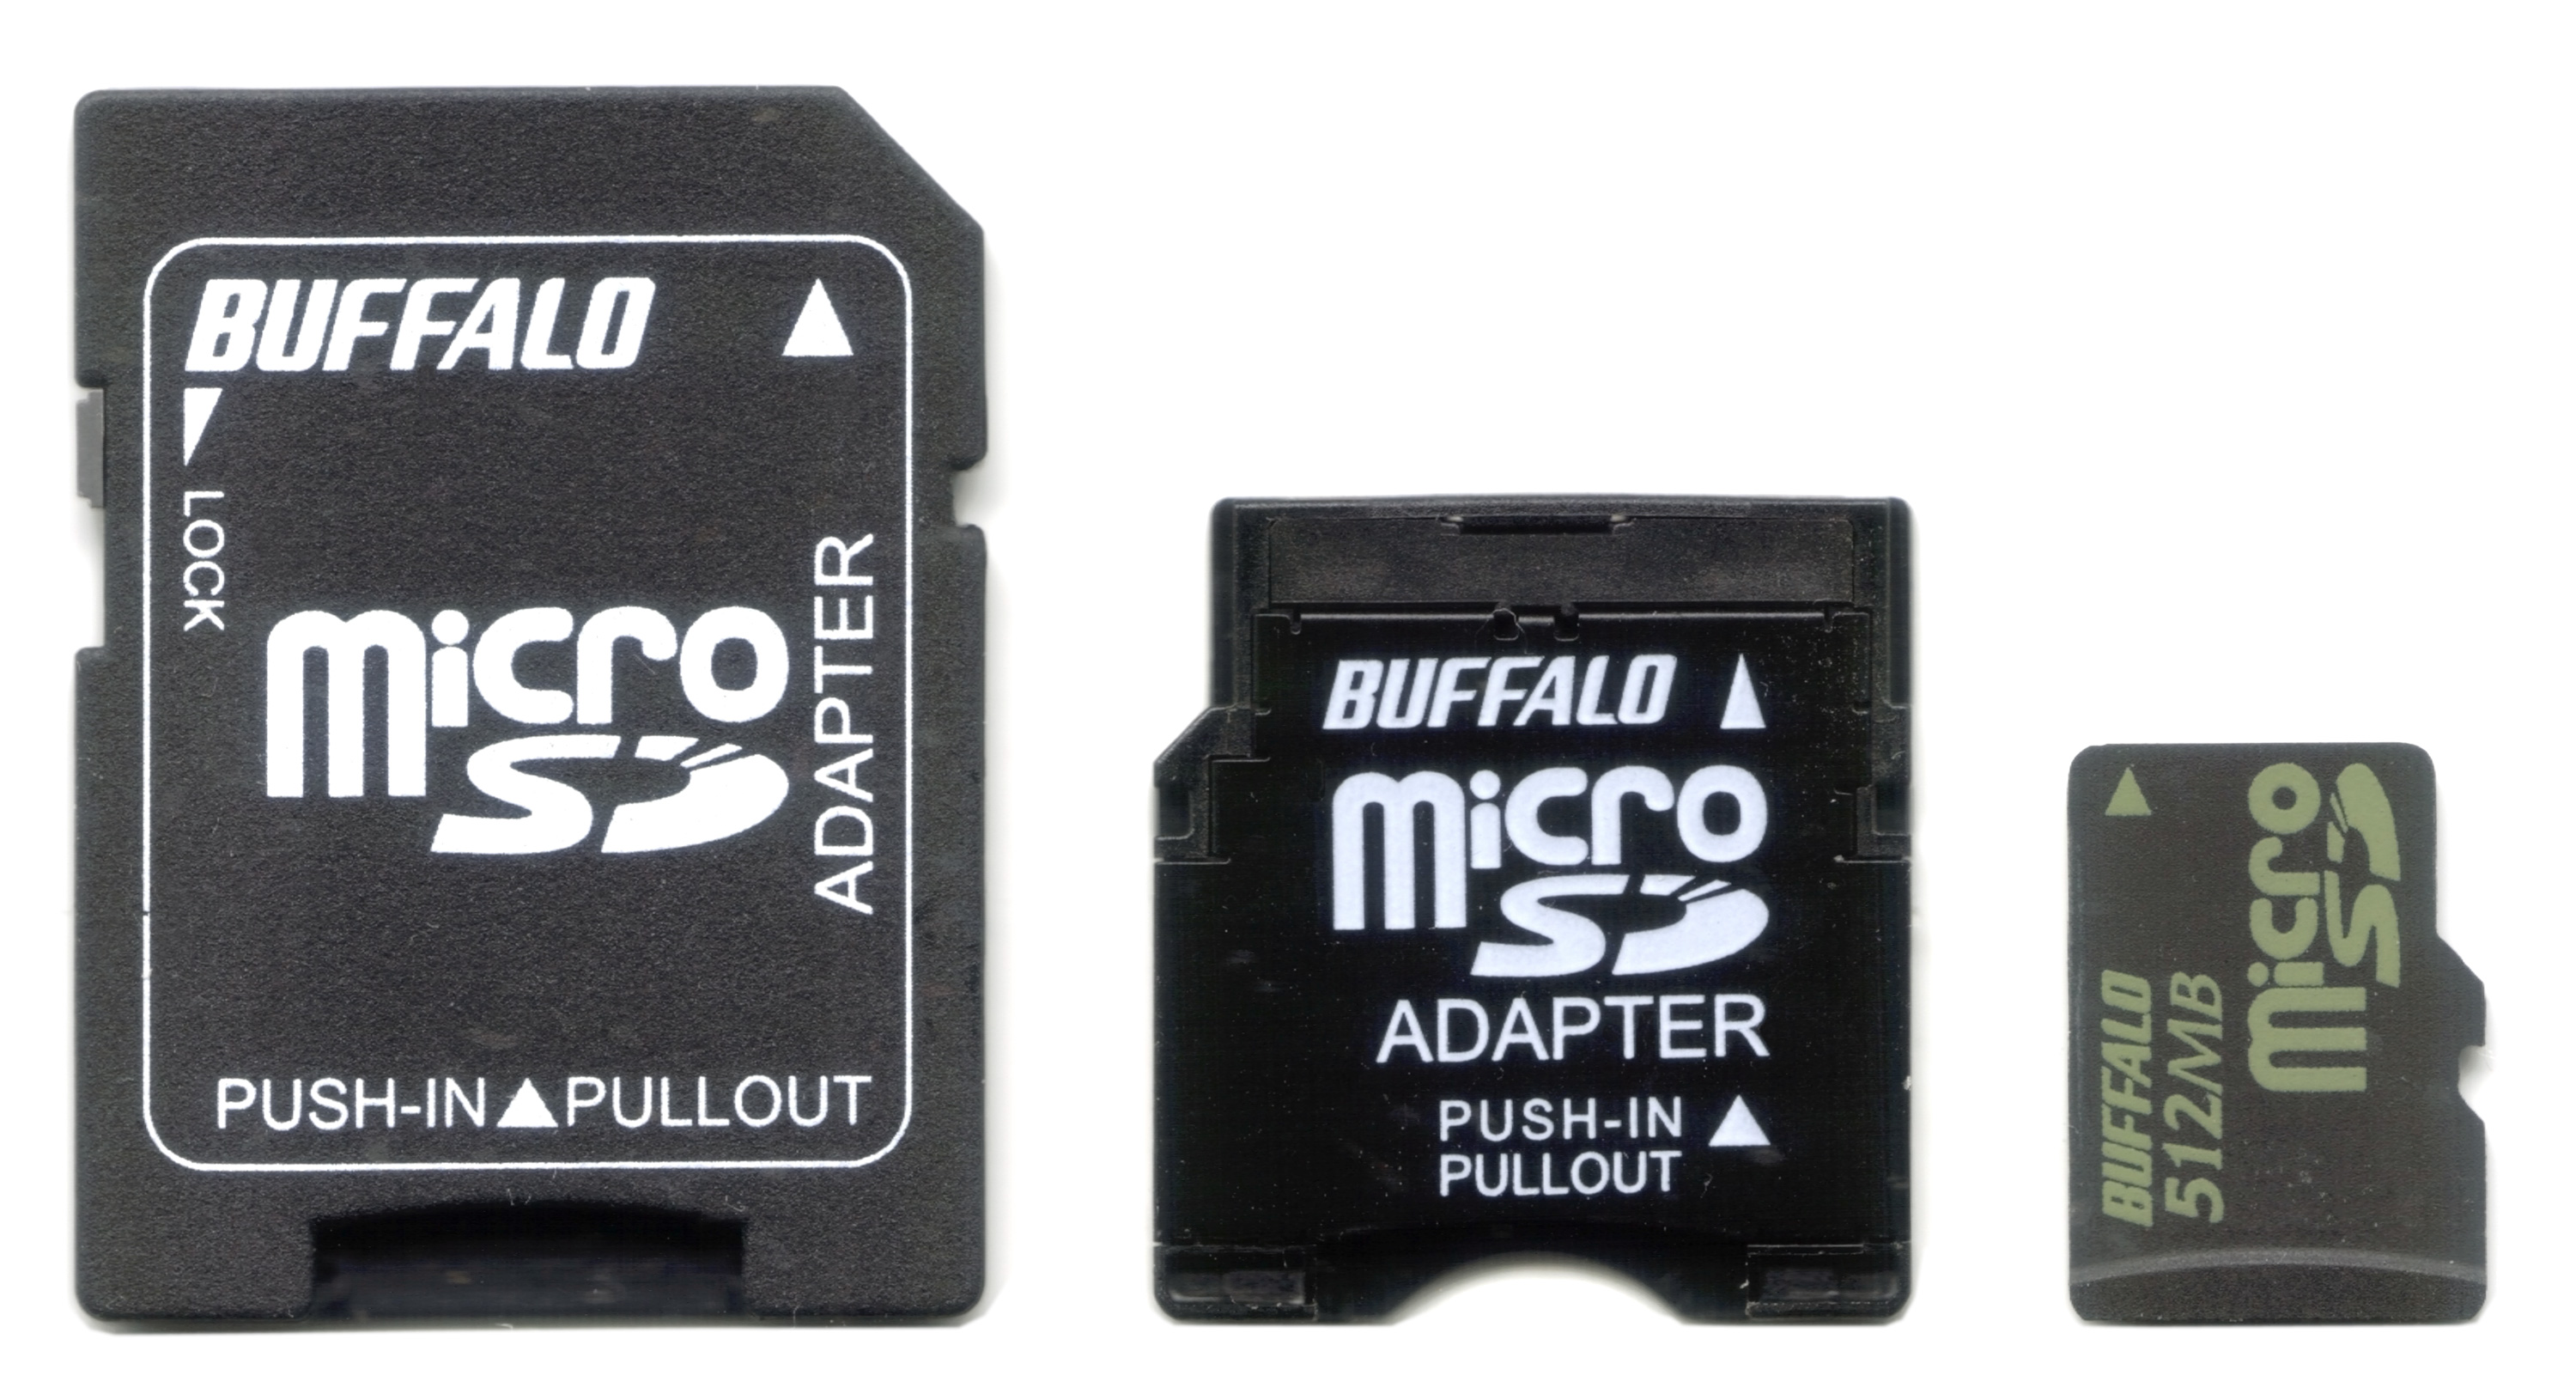 how to delete a file on a micro sd